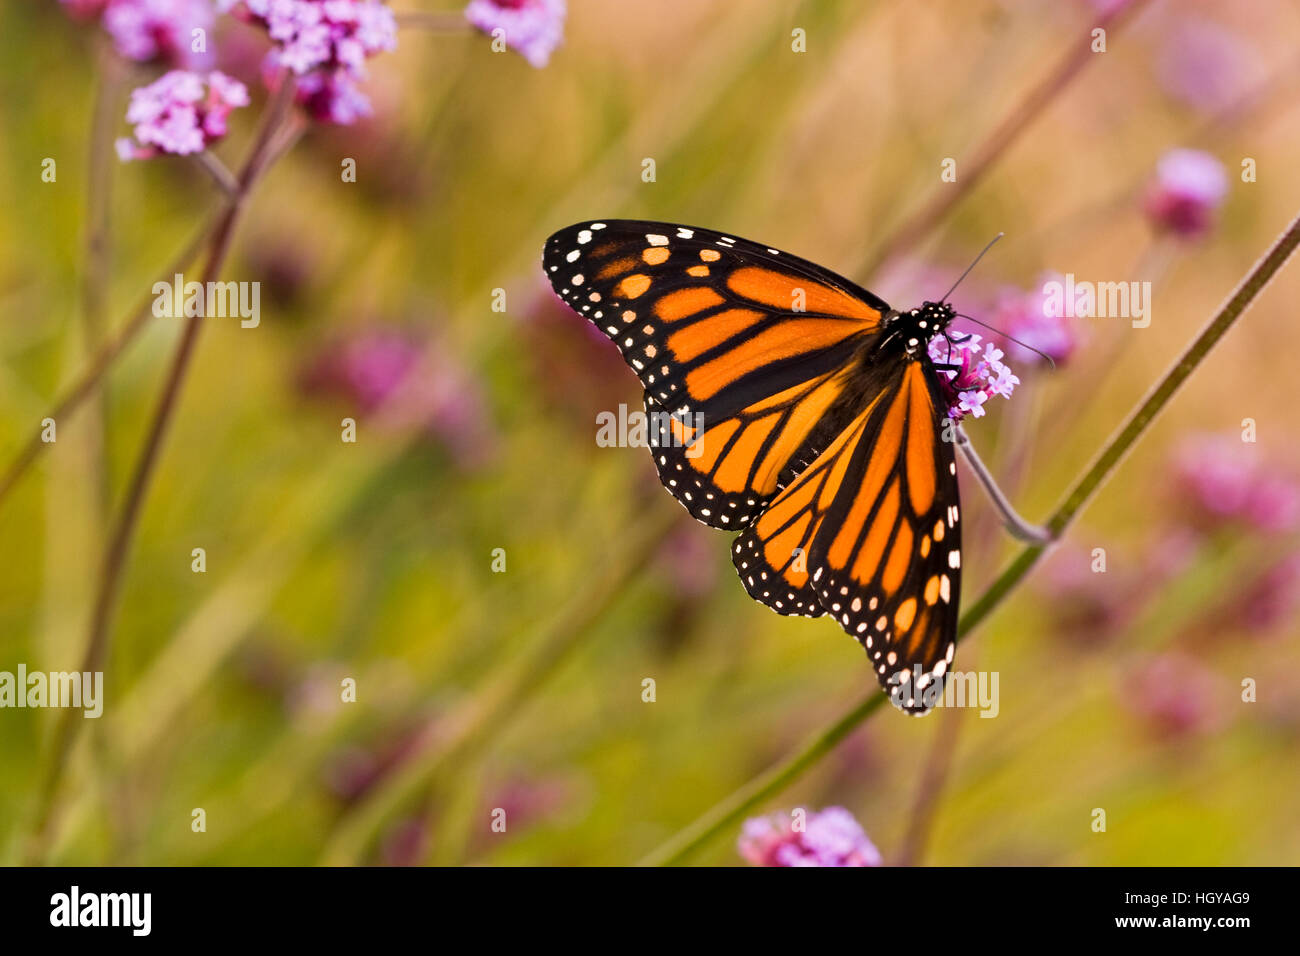 Una mariposa monarca en Meredith, New Hampshire. Imagen De Stock